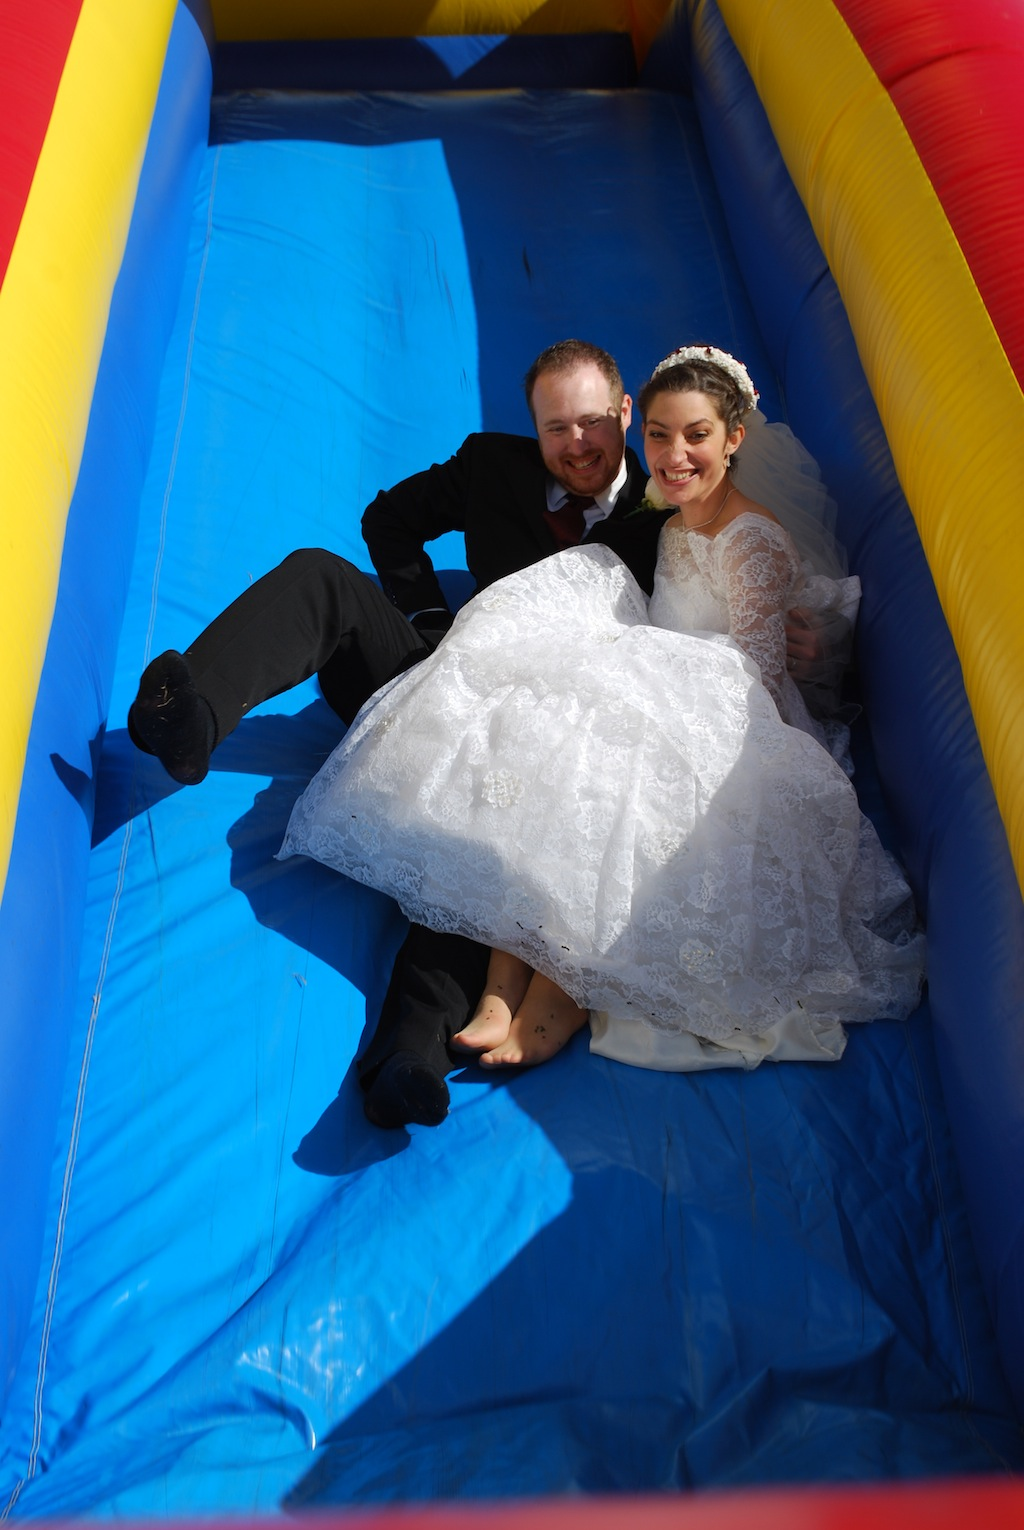 Nick and Elizabeth Slide On Their Wedding day